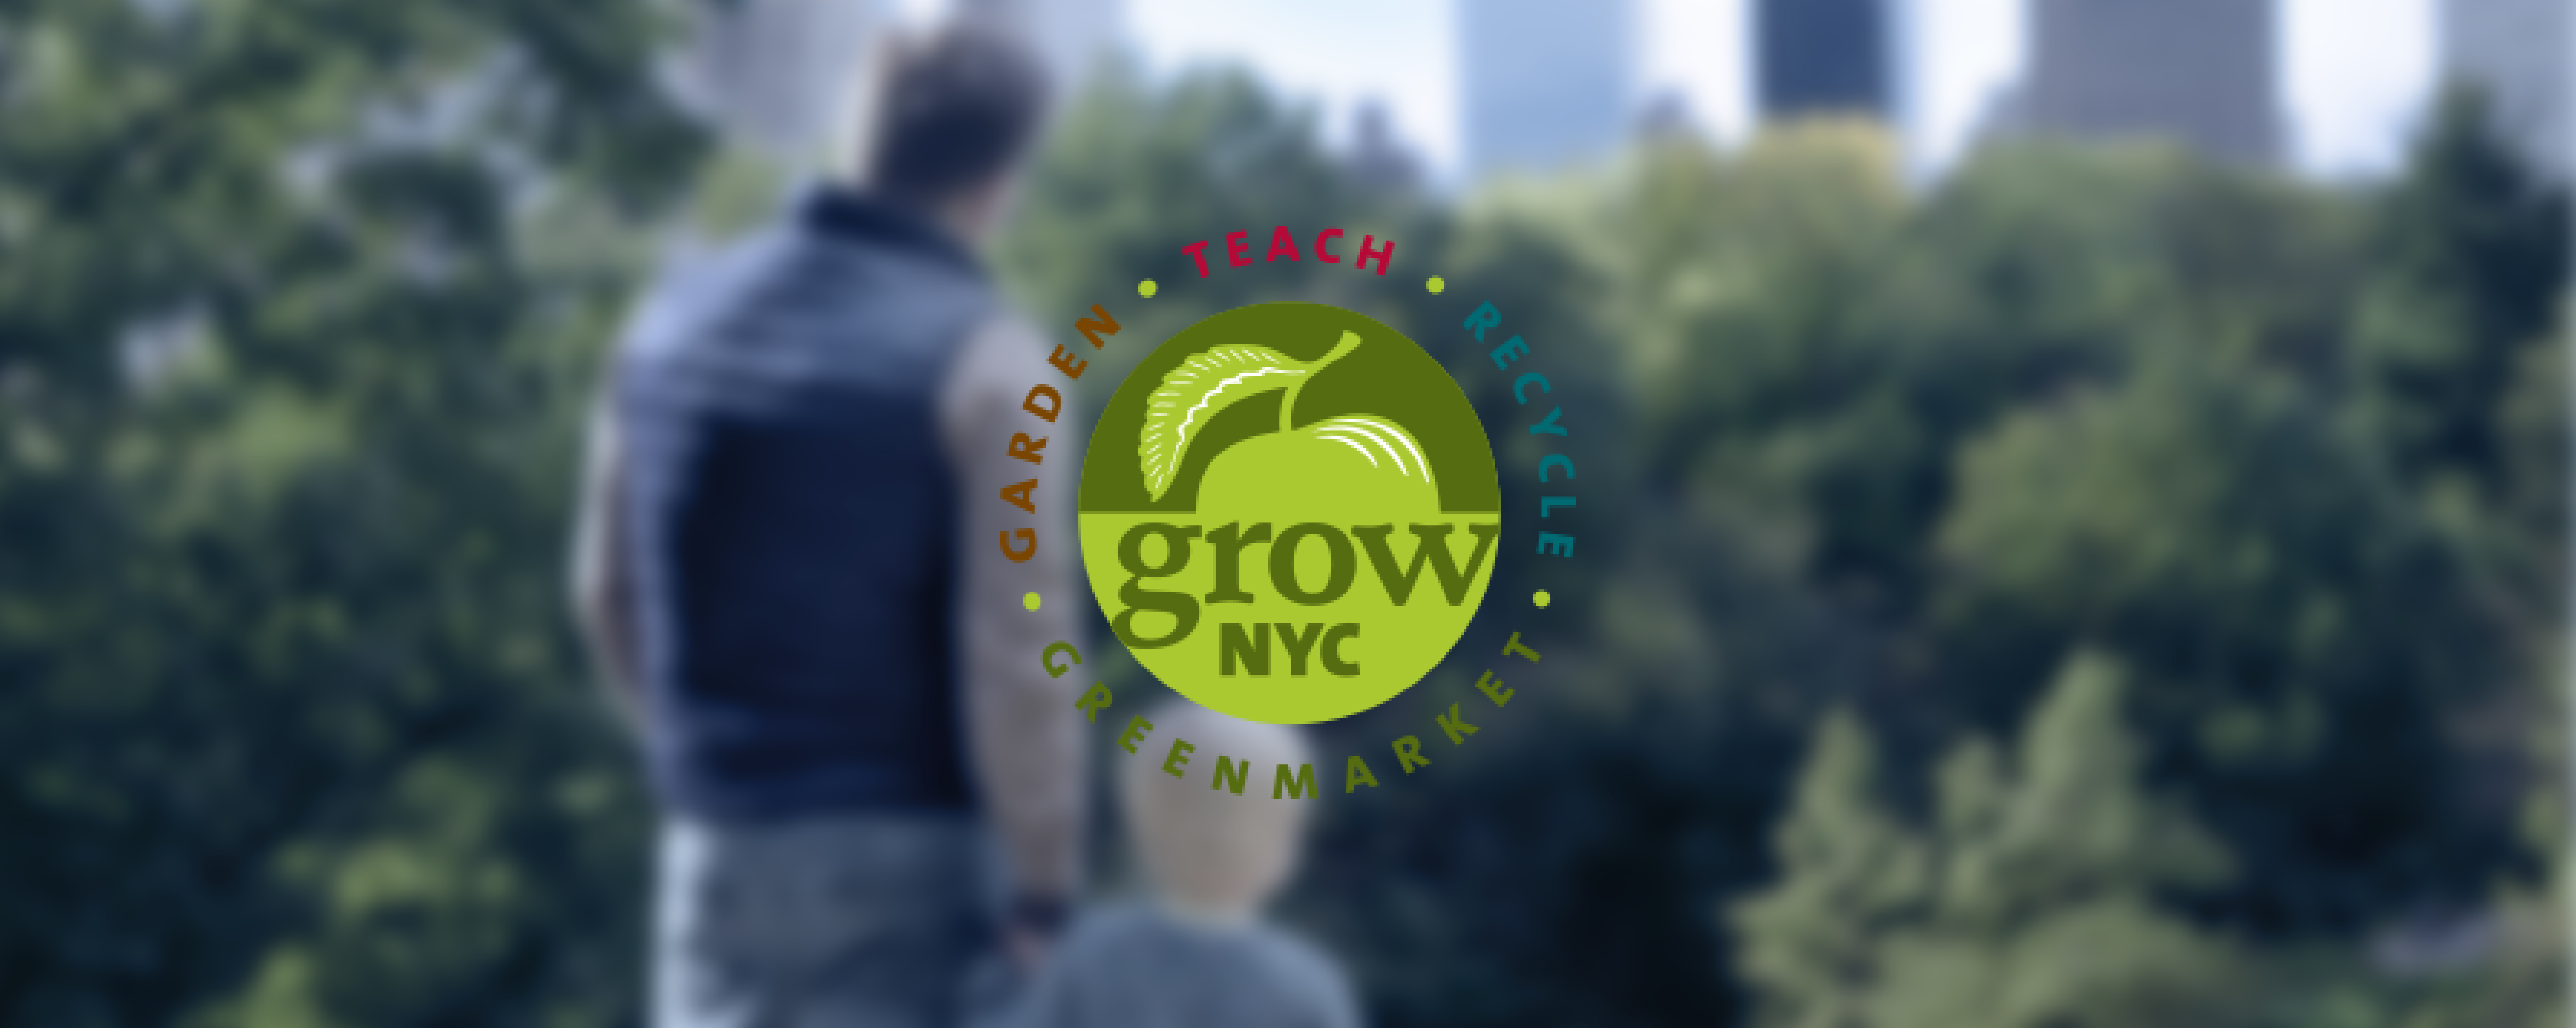 Grow NYC - 9 Nonprofits With the Ultimate Mission Mindsets | Botkeeper